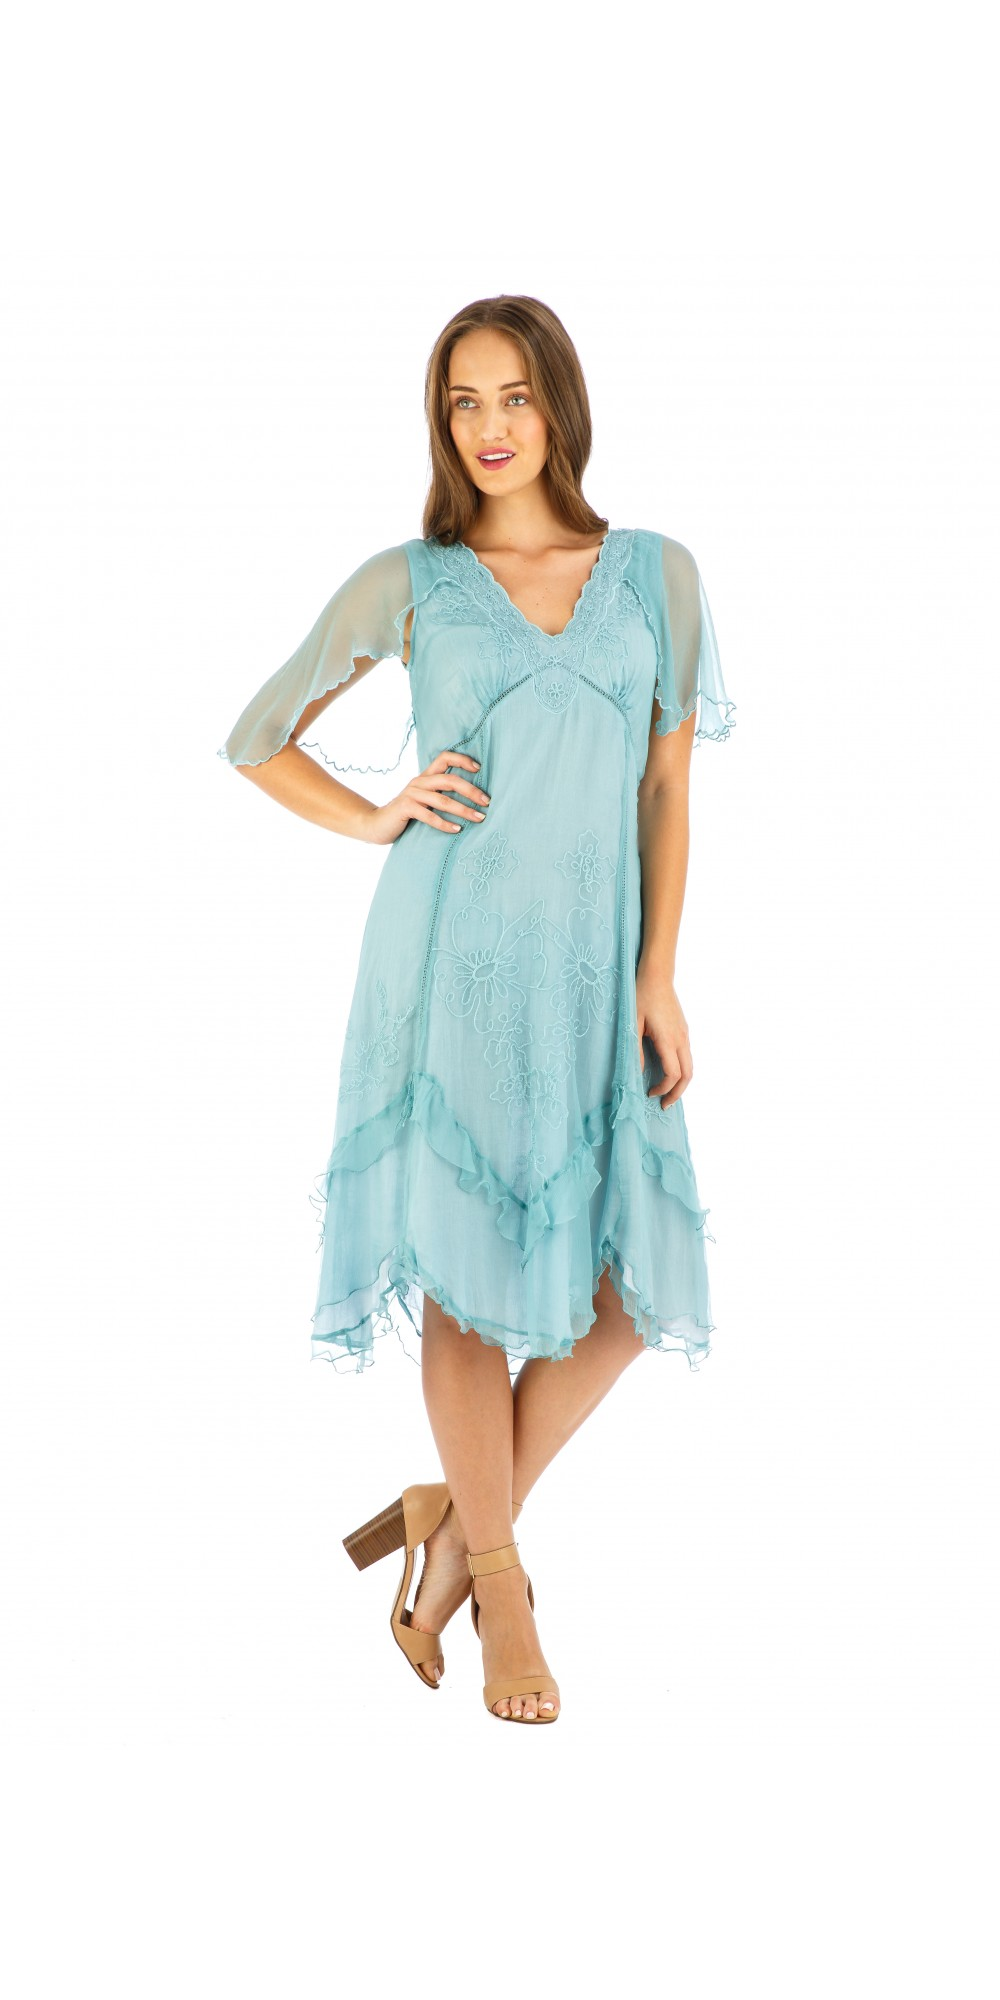 Age of Love Jacqueline AL-241 Vintage Style Party Dress in Turquoise ...